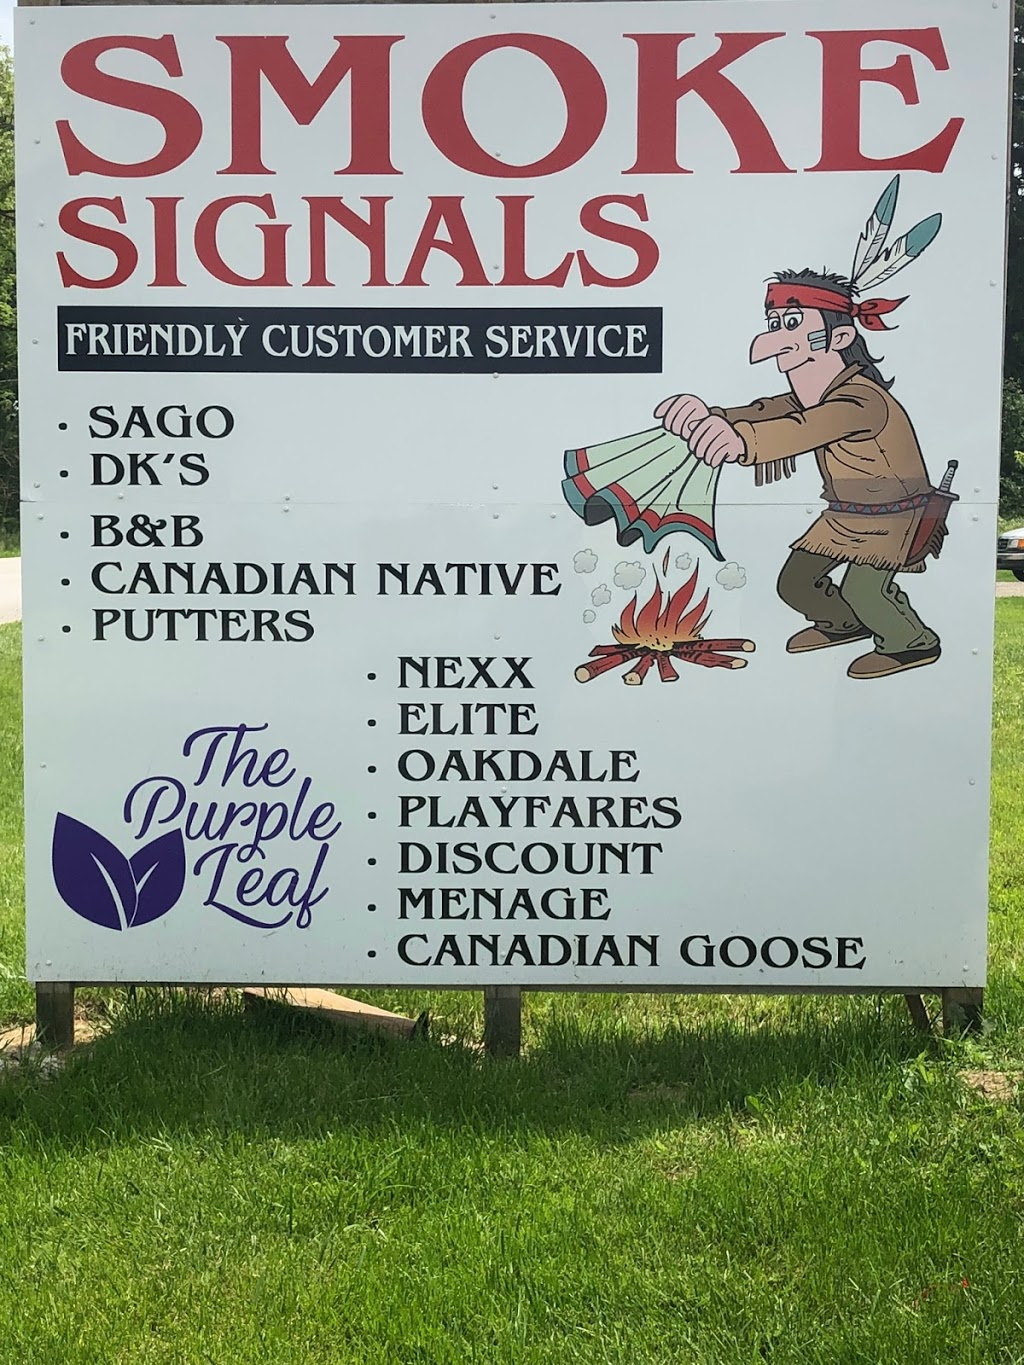 The Purple Leaf | store | 6355 Carriage Rd, Southwold, ON N0L 2G0, Canada | 5197779498 OR +1 519-777-9498